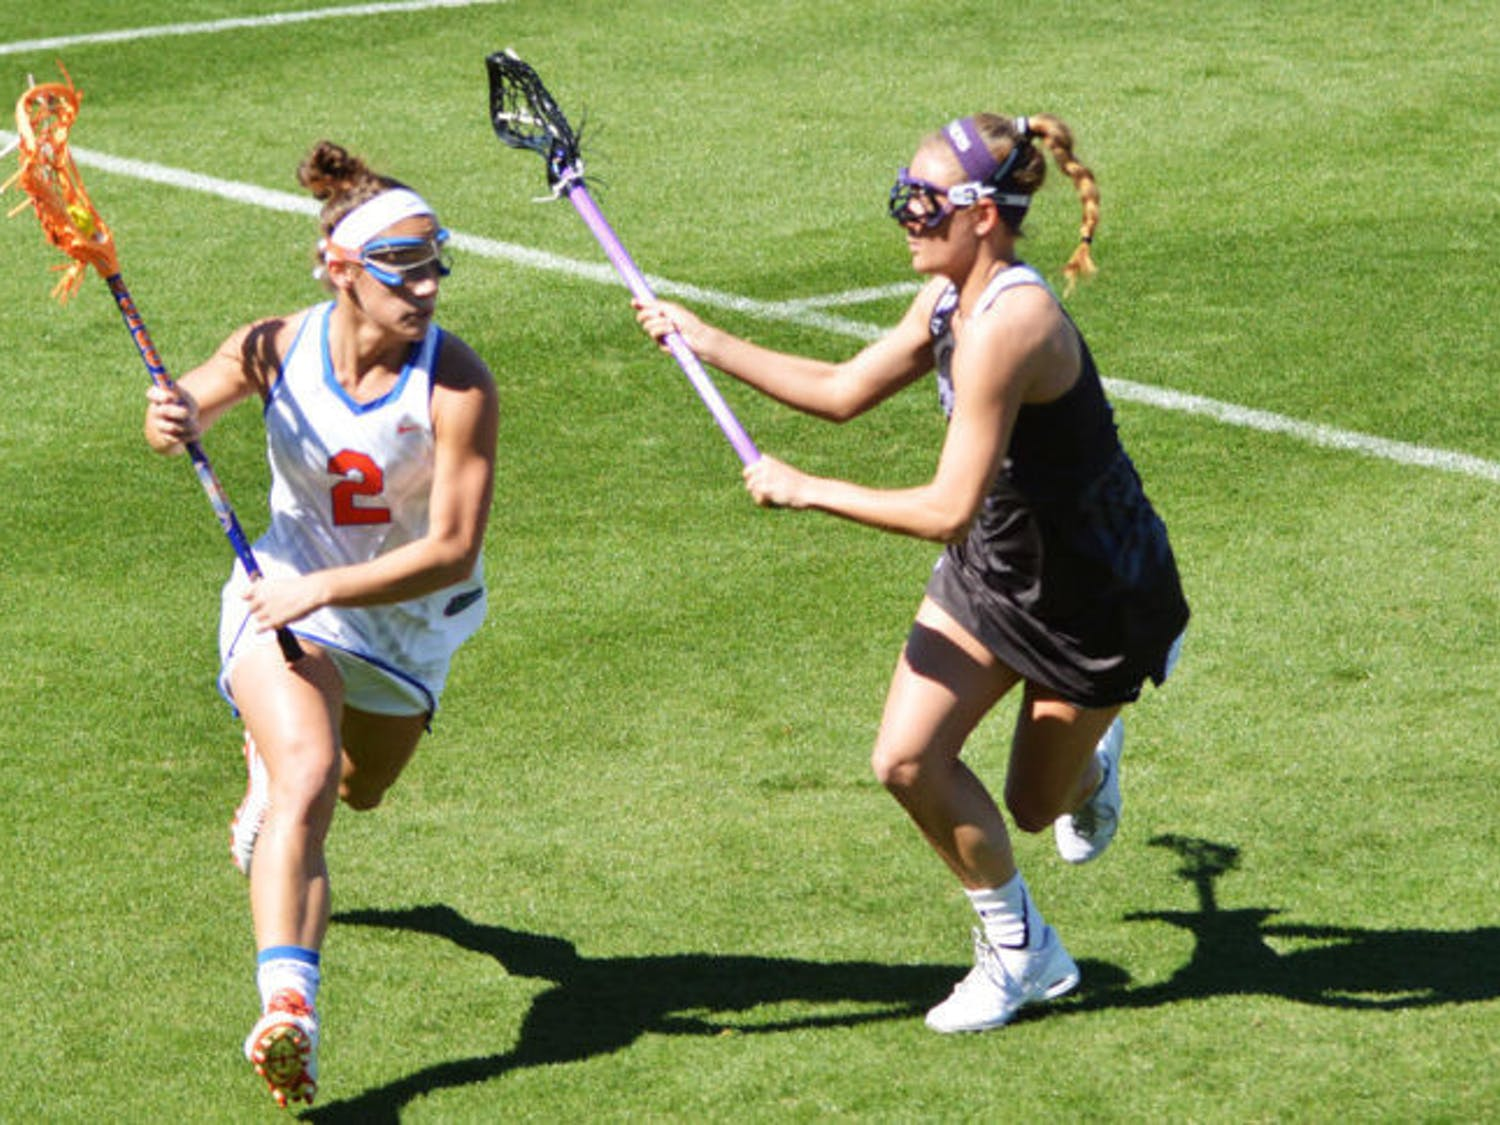 Sammi Burgess drives toward the net during Florida's 18-7 win against High Point on Feb. 15 at Donald R. Dizney Stadium. The freshman attacker finished second on the team with 53 points.